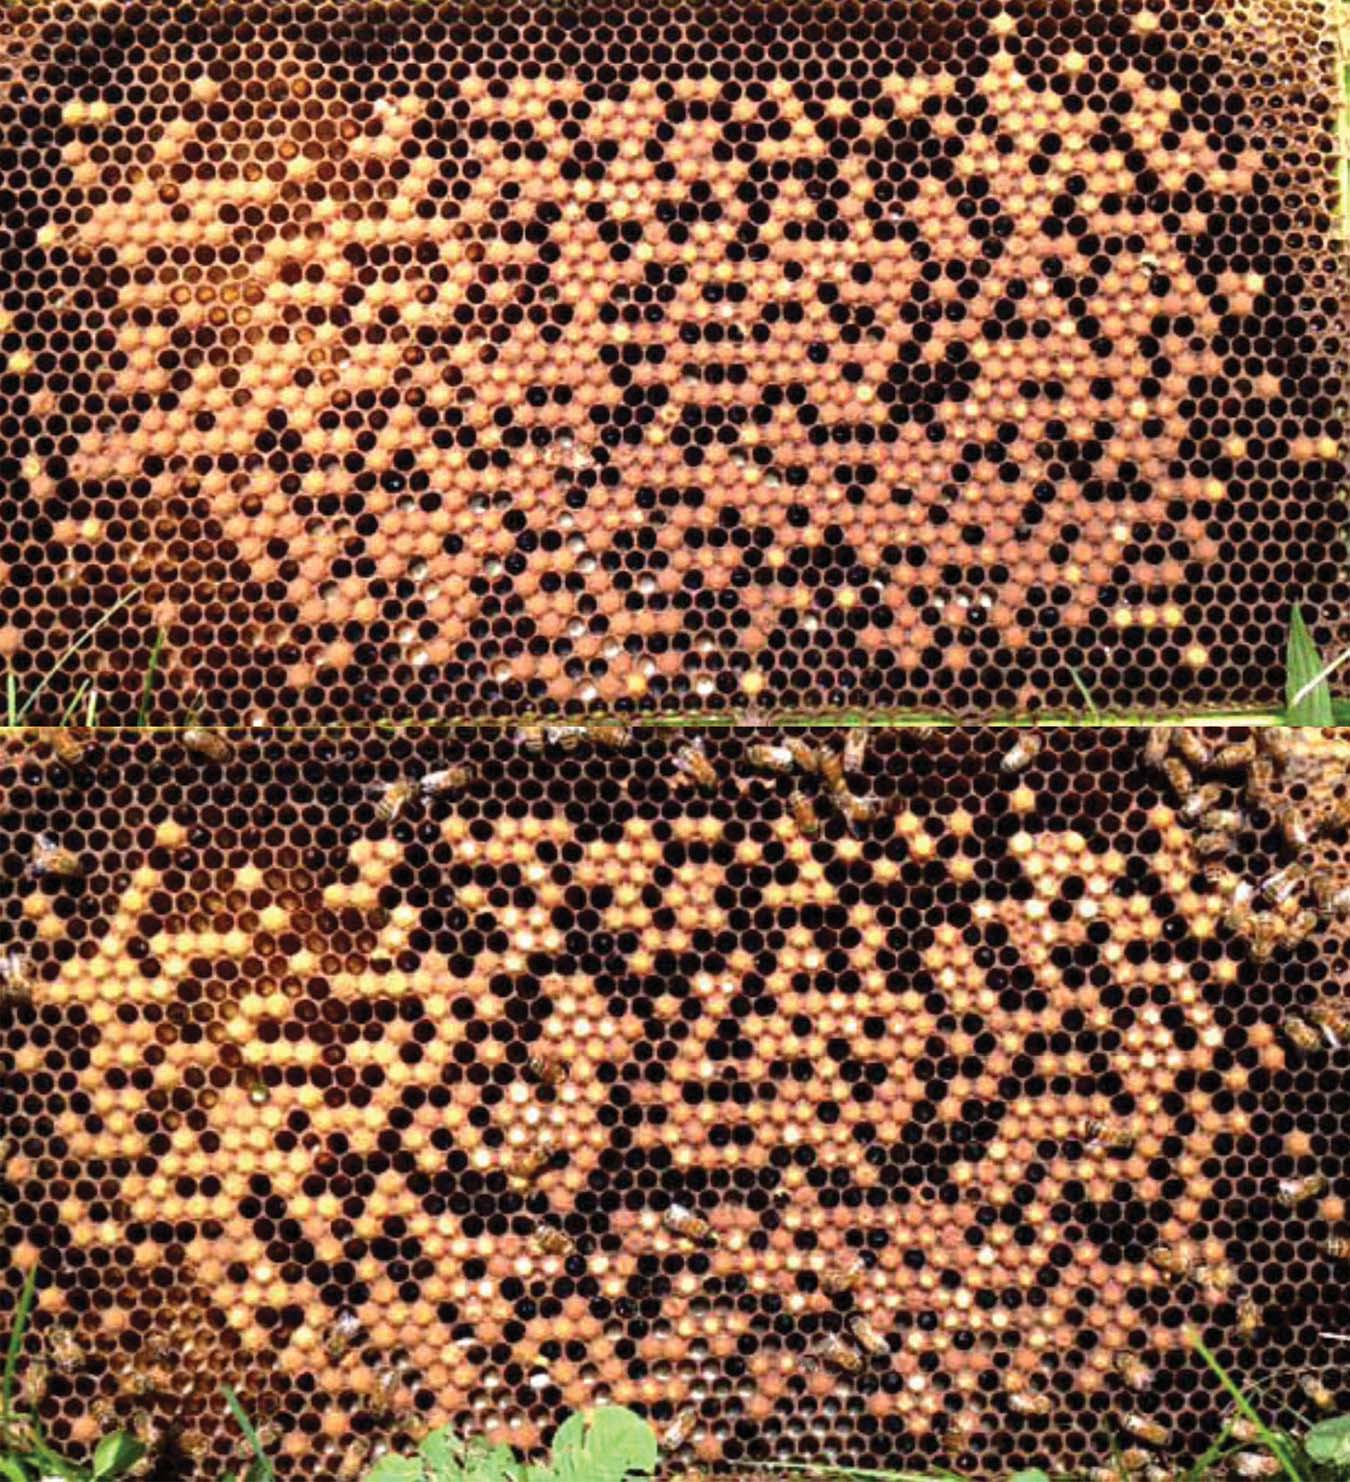 Figure 2. Evidence of Varroa-sensitive hygine (VSH). A drone comb infested with Varroa mites was inserted into one of our recent breeder colonies for 48 hours. This figure shows the before (top) and after (bottom).